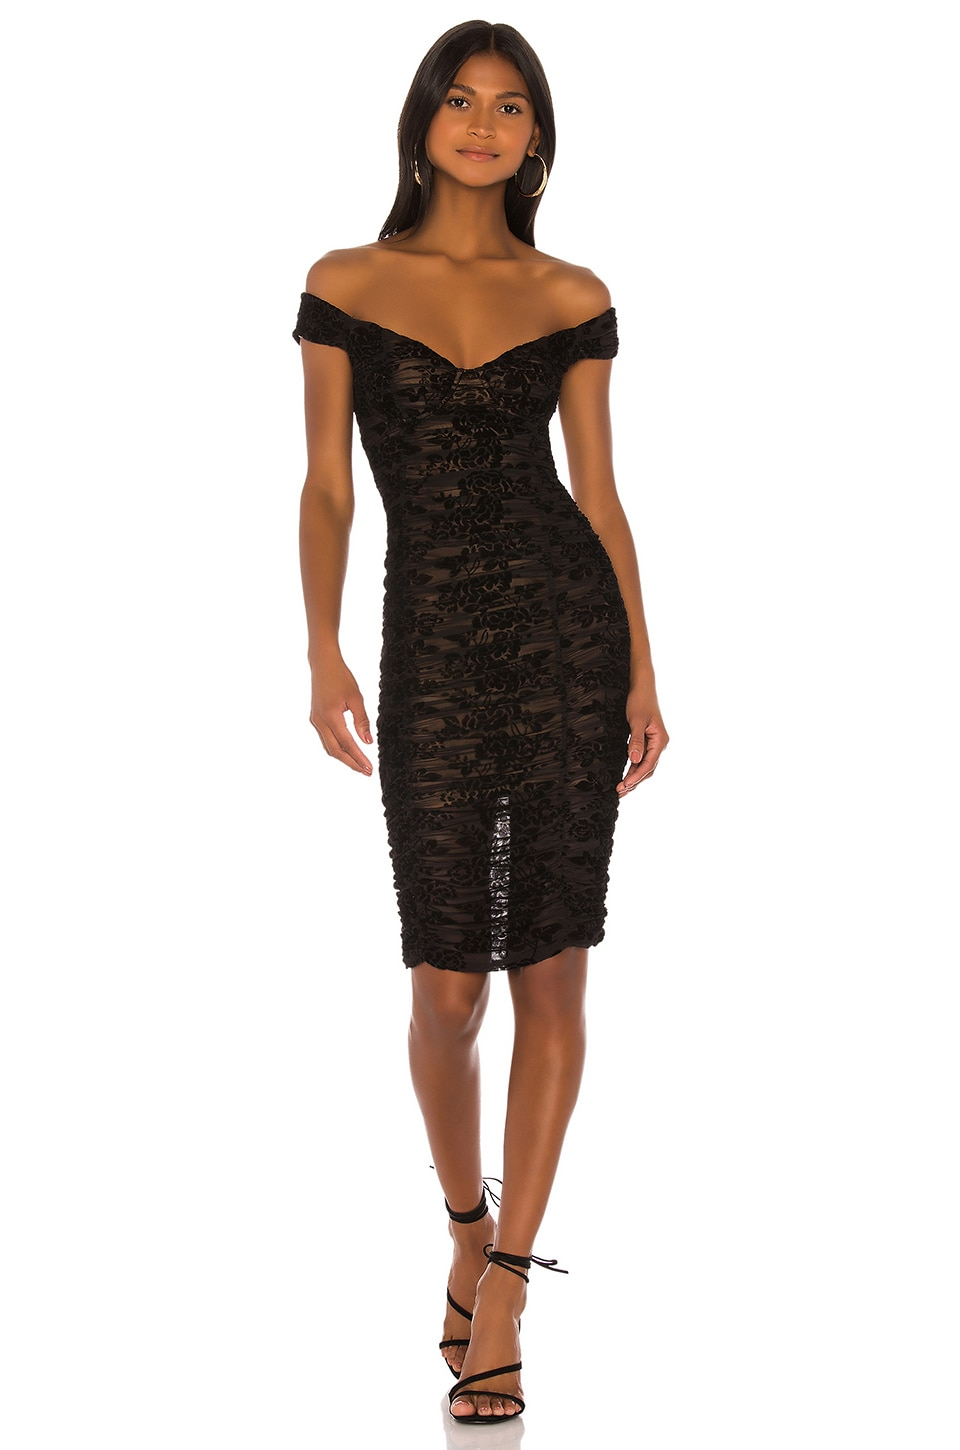 MAJORELLE Tabitha Midi Dress in Black